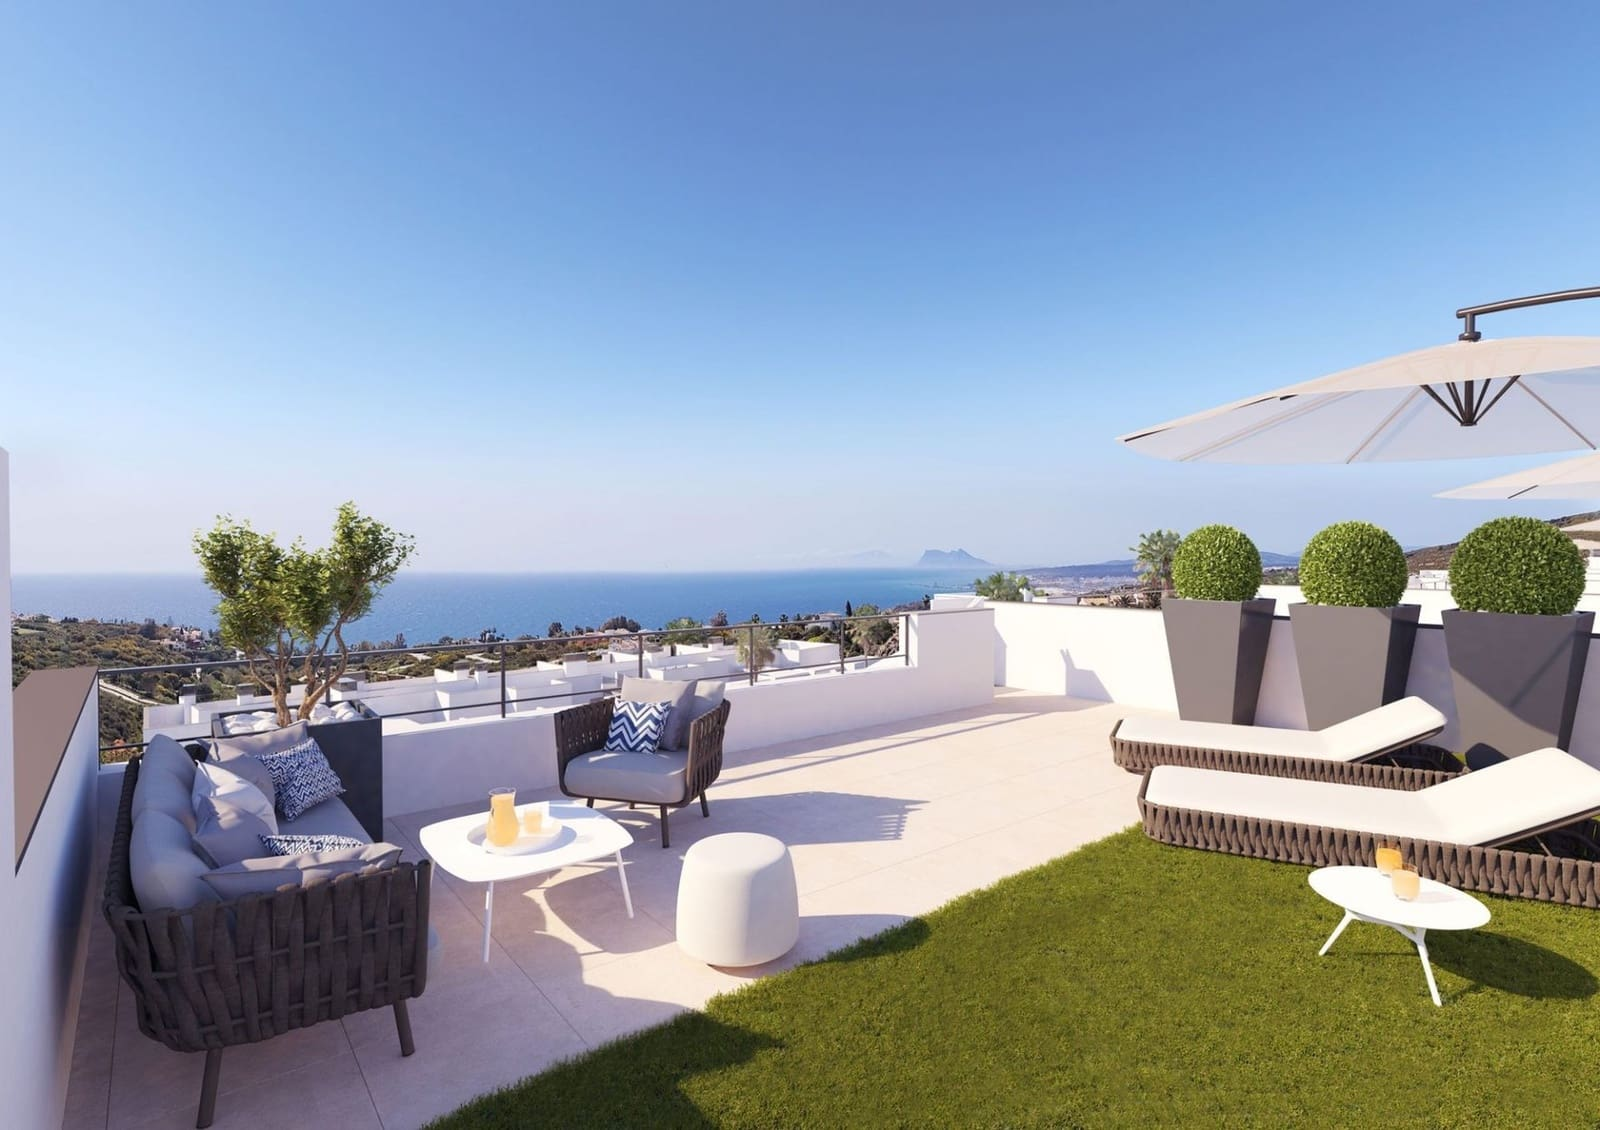 2 bedroom Penthouse for sale in Manilva with pool garage - € 292,000 (Ref: 5144143)